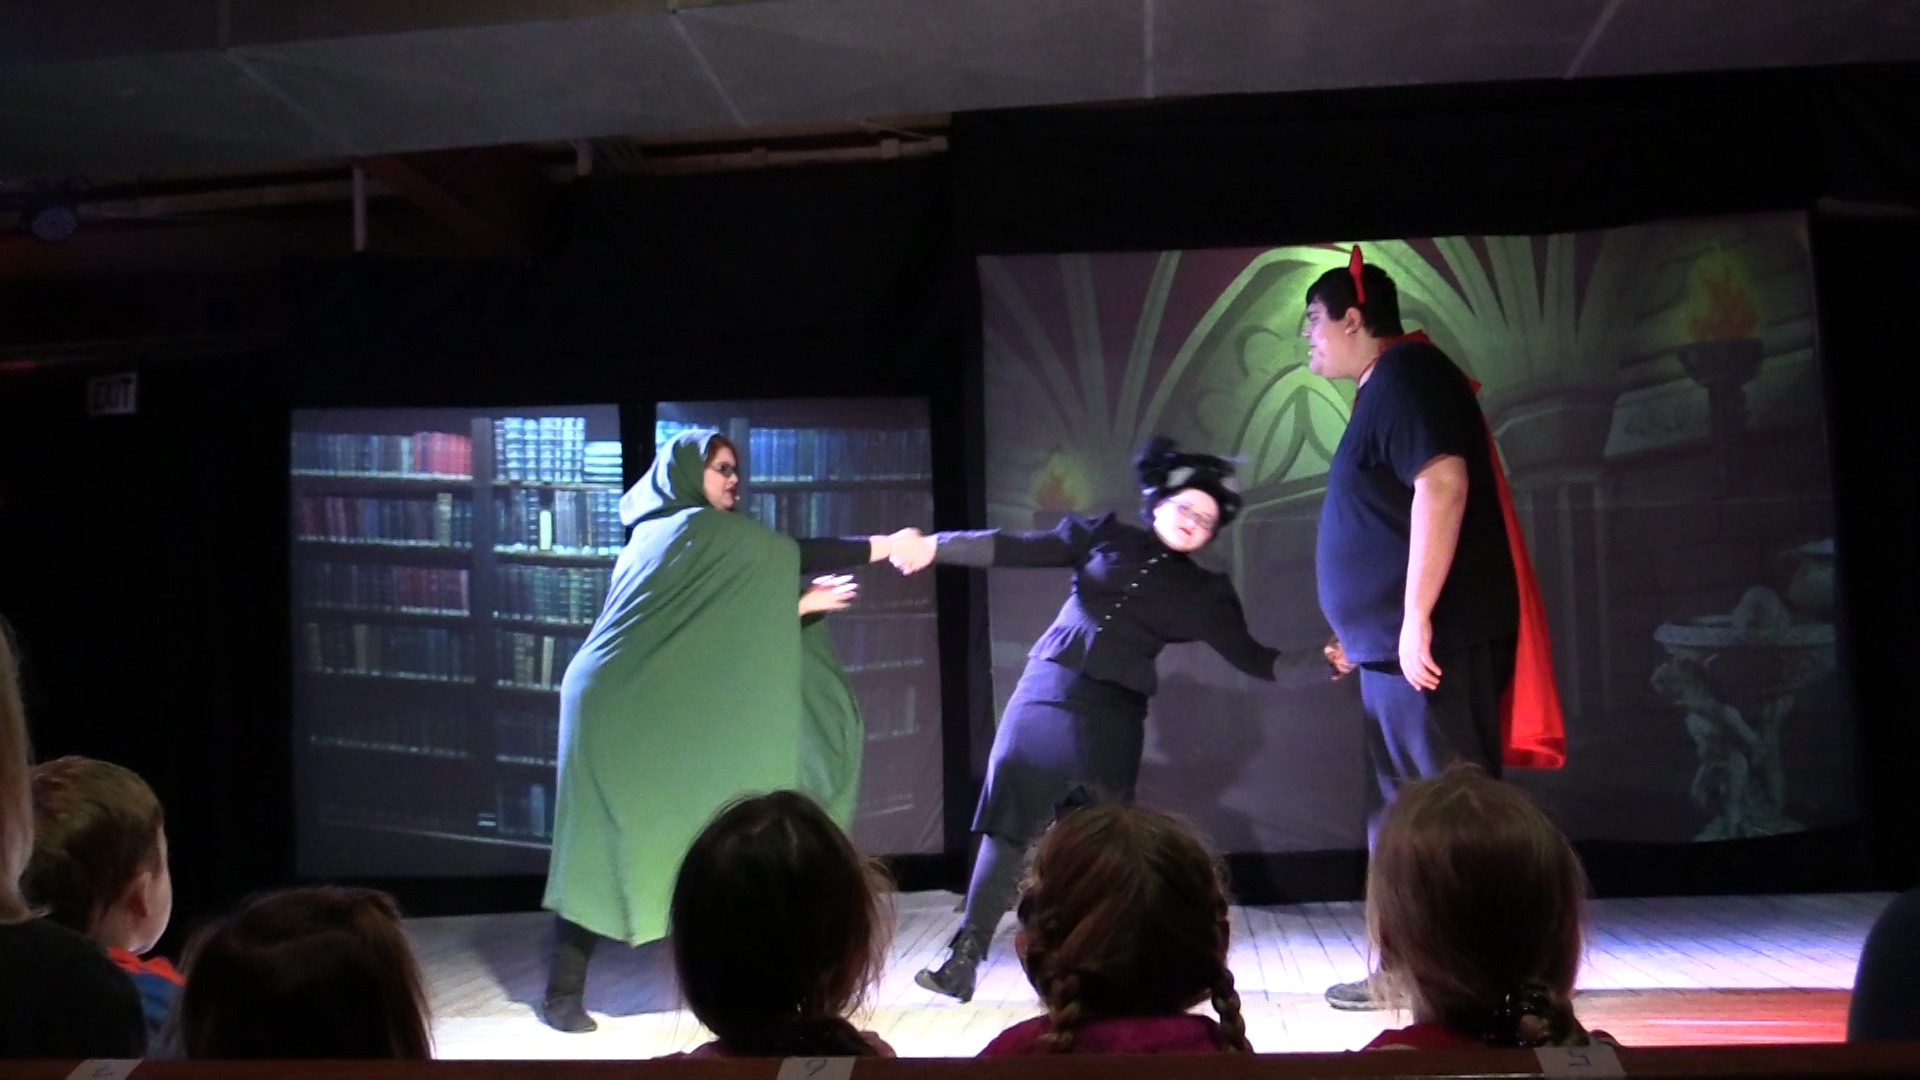 VIDEO - Brothers Grimm at Warren Arts